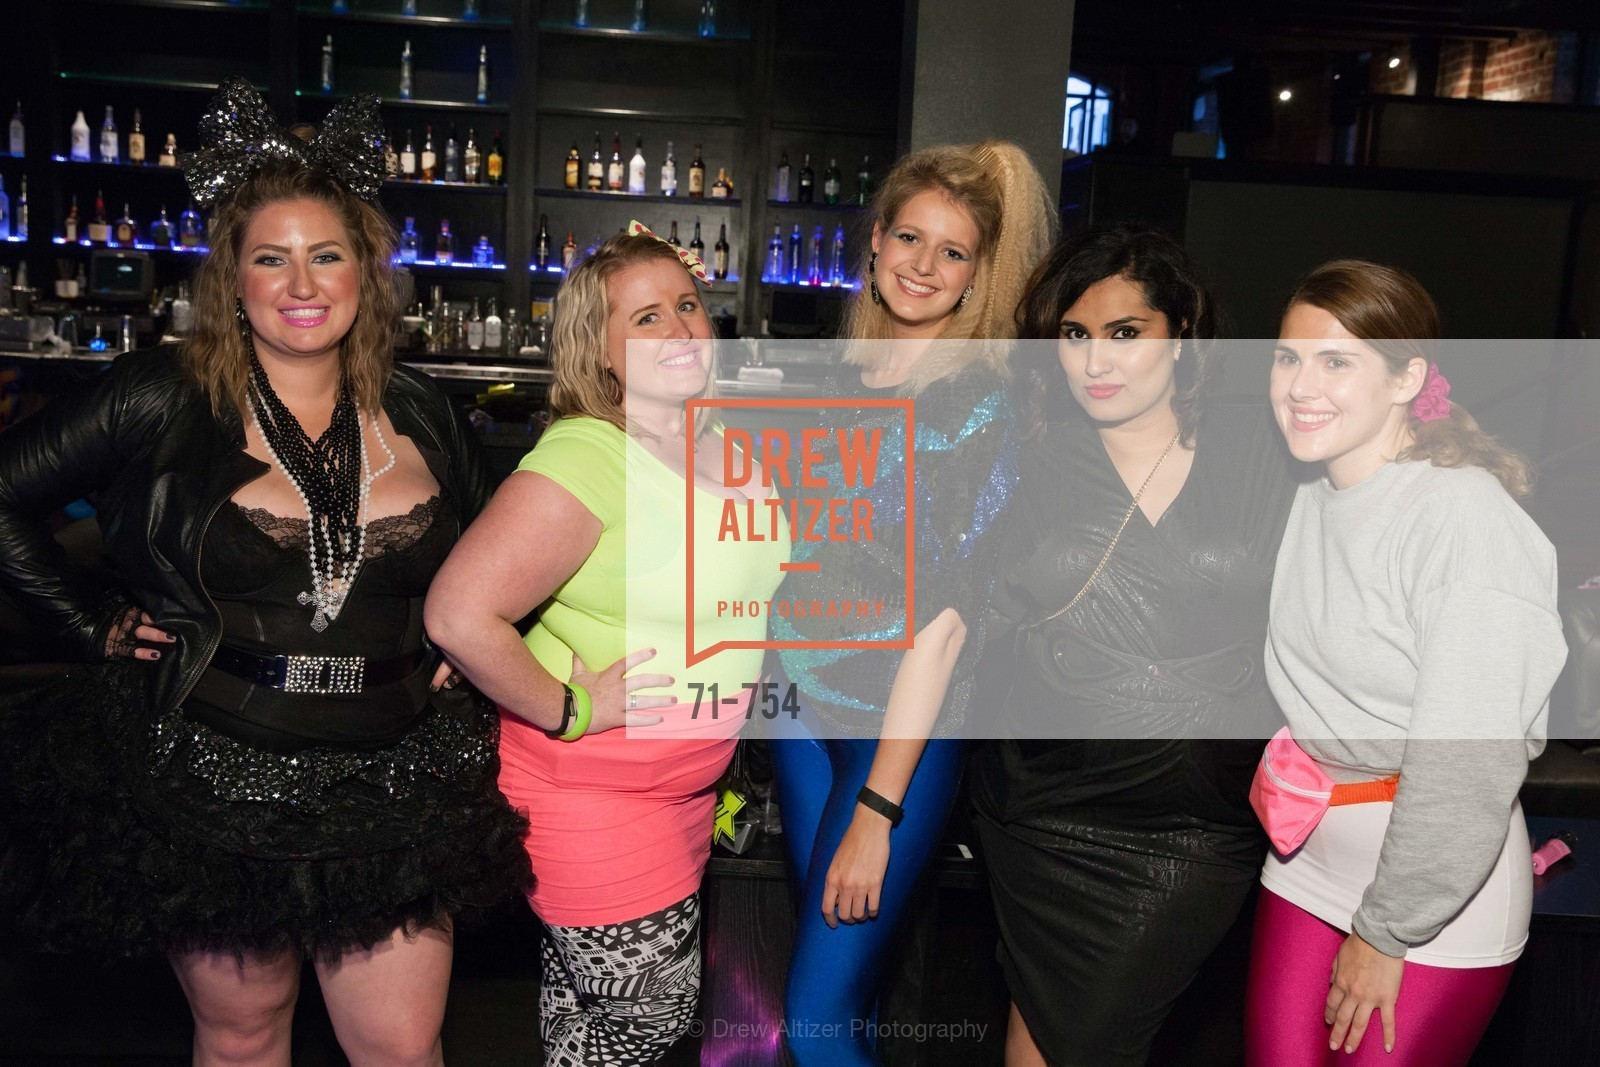 Annie Benisch, Eryn Golden, Laura Moir, Teesta Kaur, Cailin Todd, SPINSTERS OF SAN FRANCISCO Party Like It's 1985 Charity Party, US, Fort One Bar & Lounge. 2801 Leavenworth St, May 30th, 2015,Drew Altizer, Drew Altizer Photography, full-service agency, private events, San Francisco photographer, photographer california